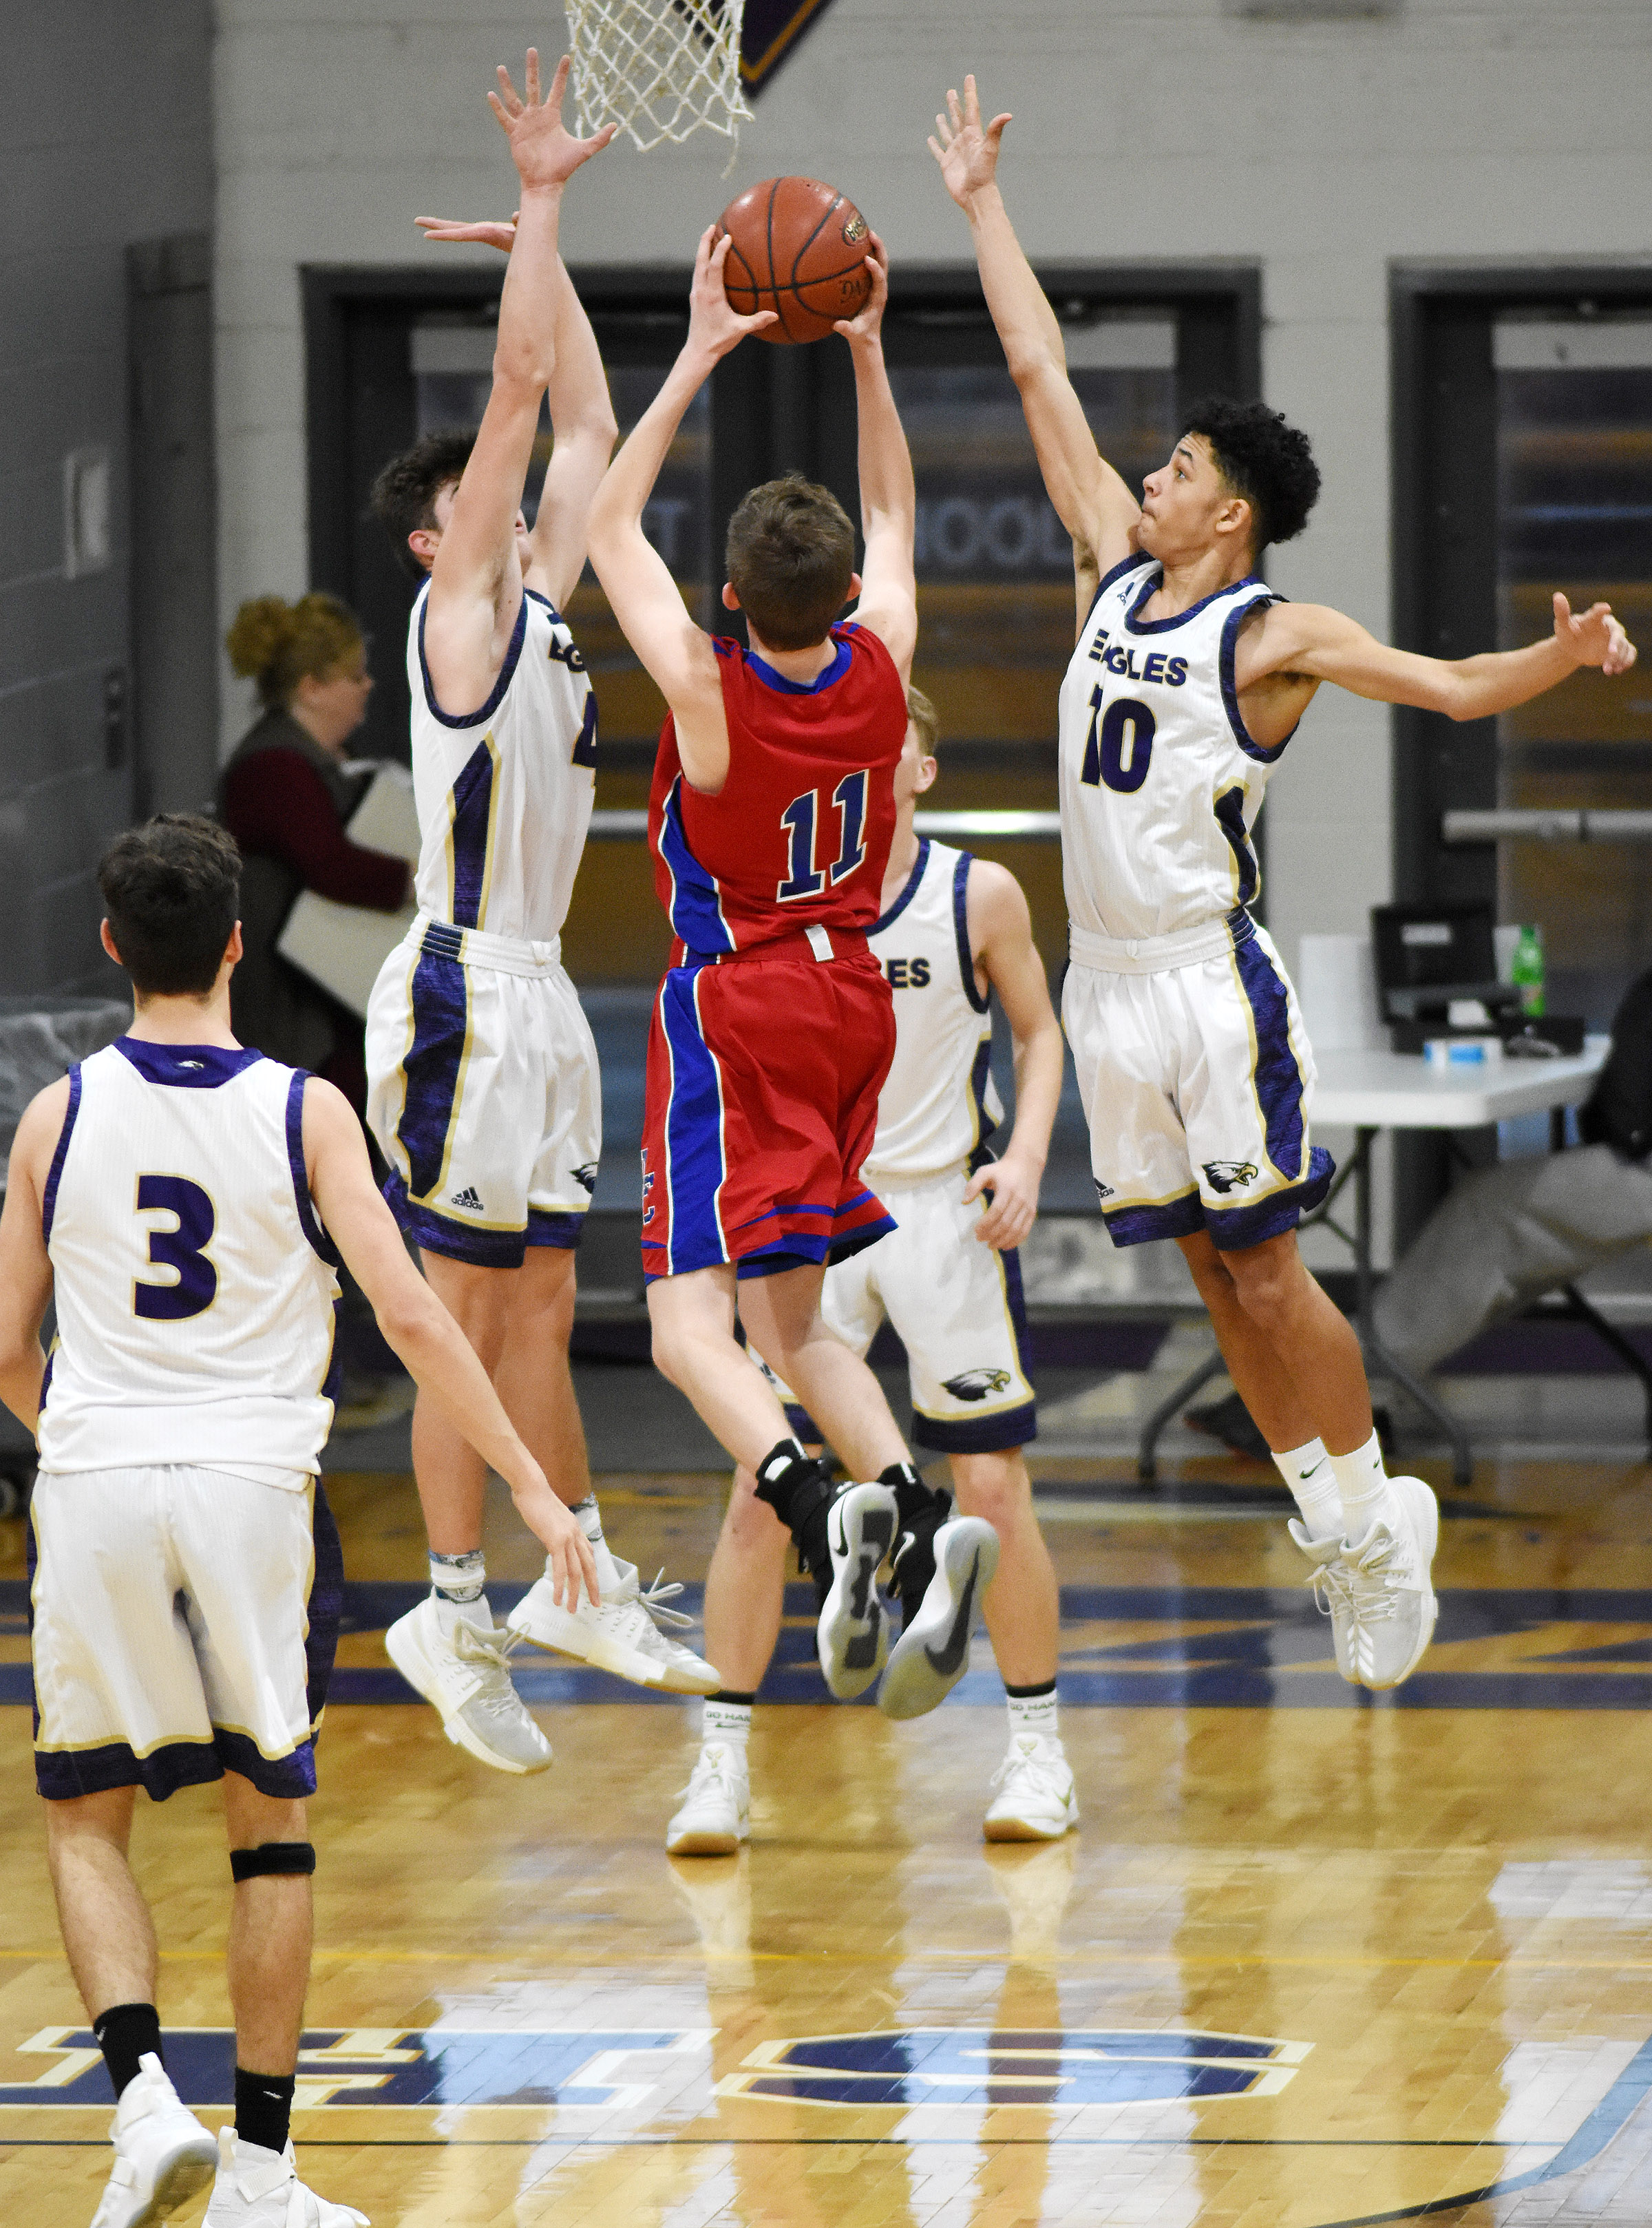 CHS sophomores Mark Rigsby, at left, and Mikael Vaught jump to block a shot.